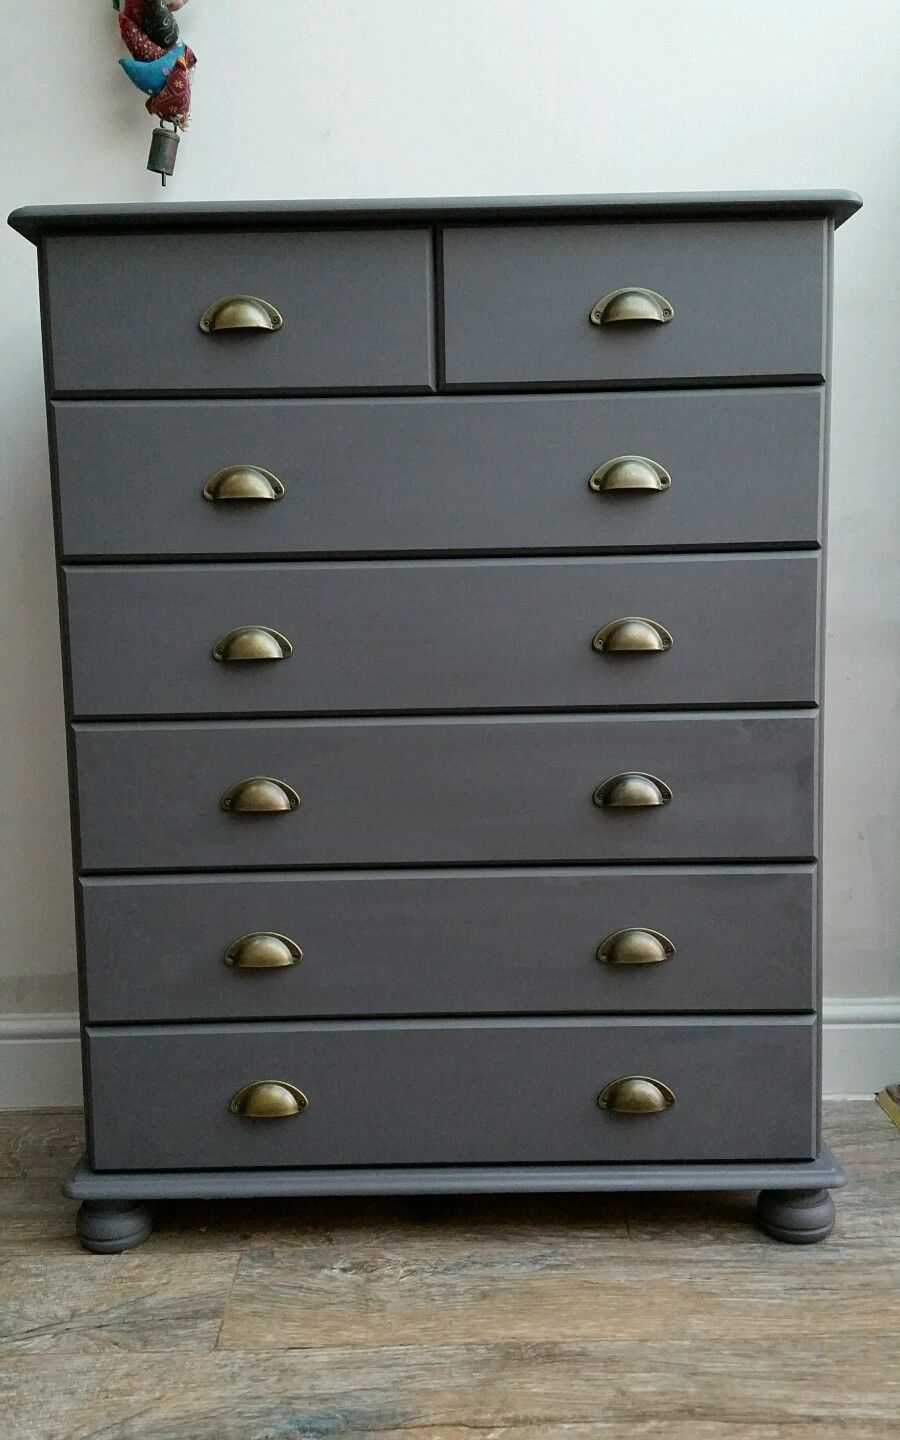 Exceptional Stunning Pine Chest Of Drawers   Bun Feet Painted Grey   Shabby Chic  Industrial | EBay